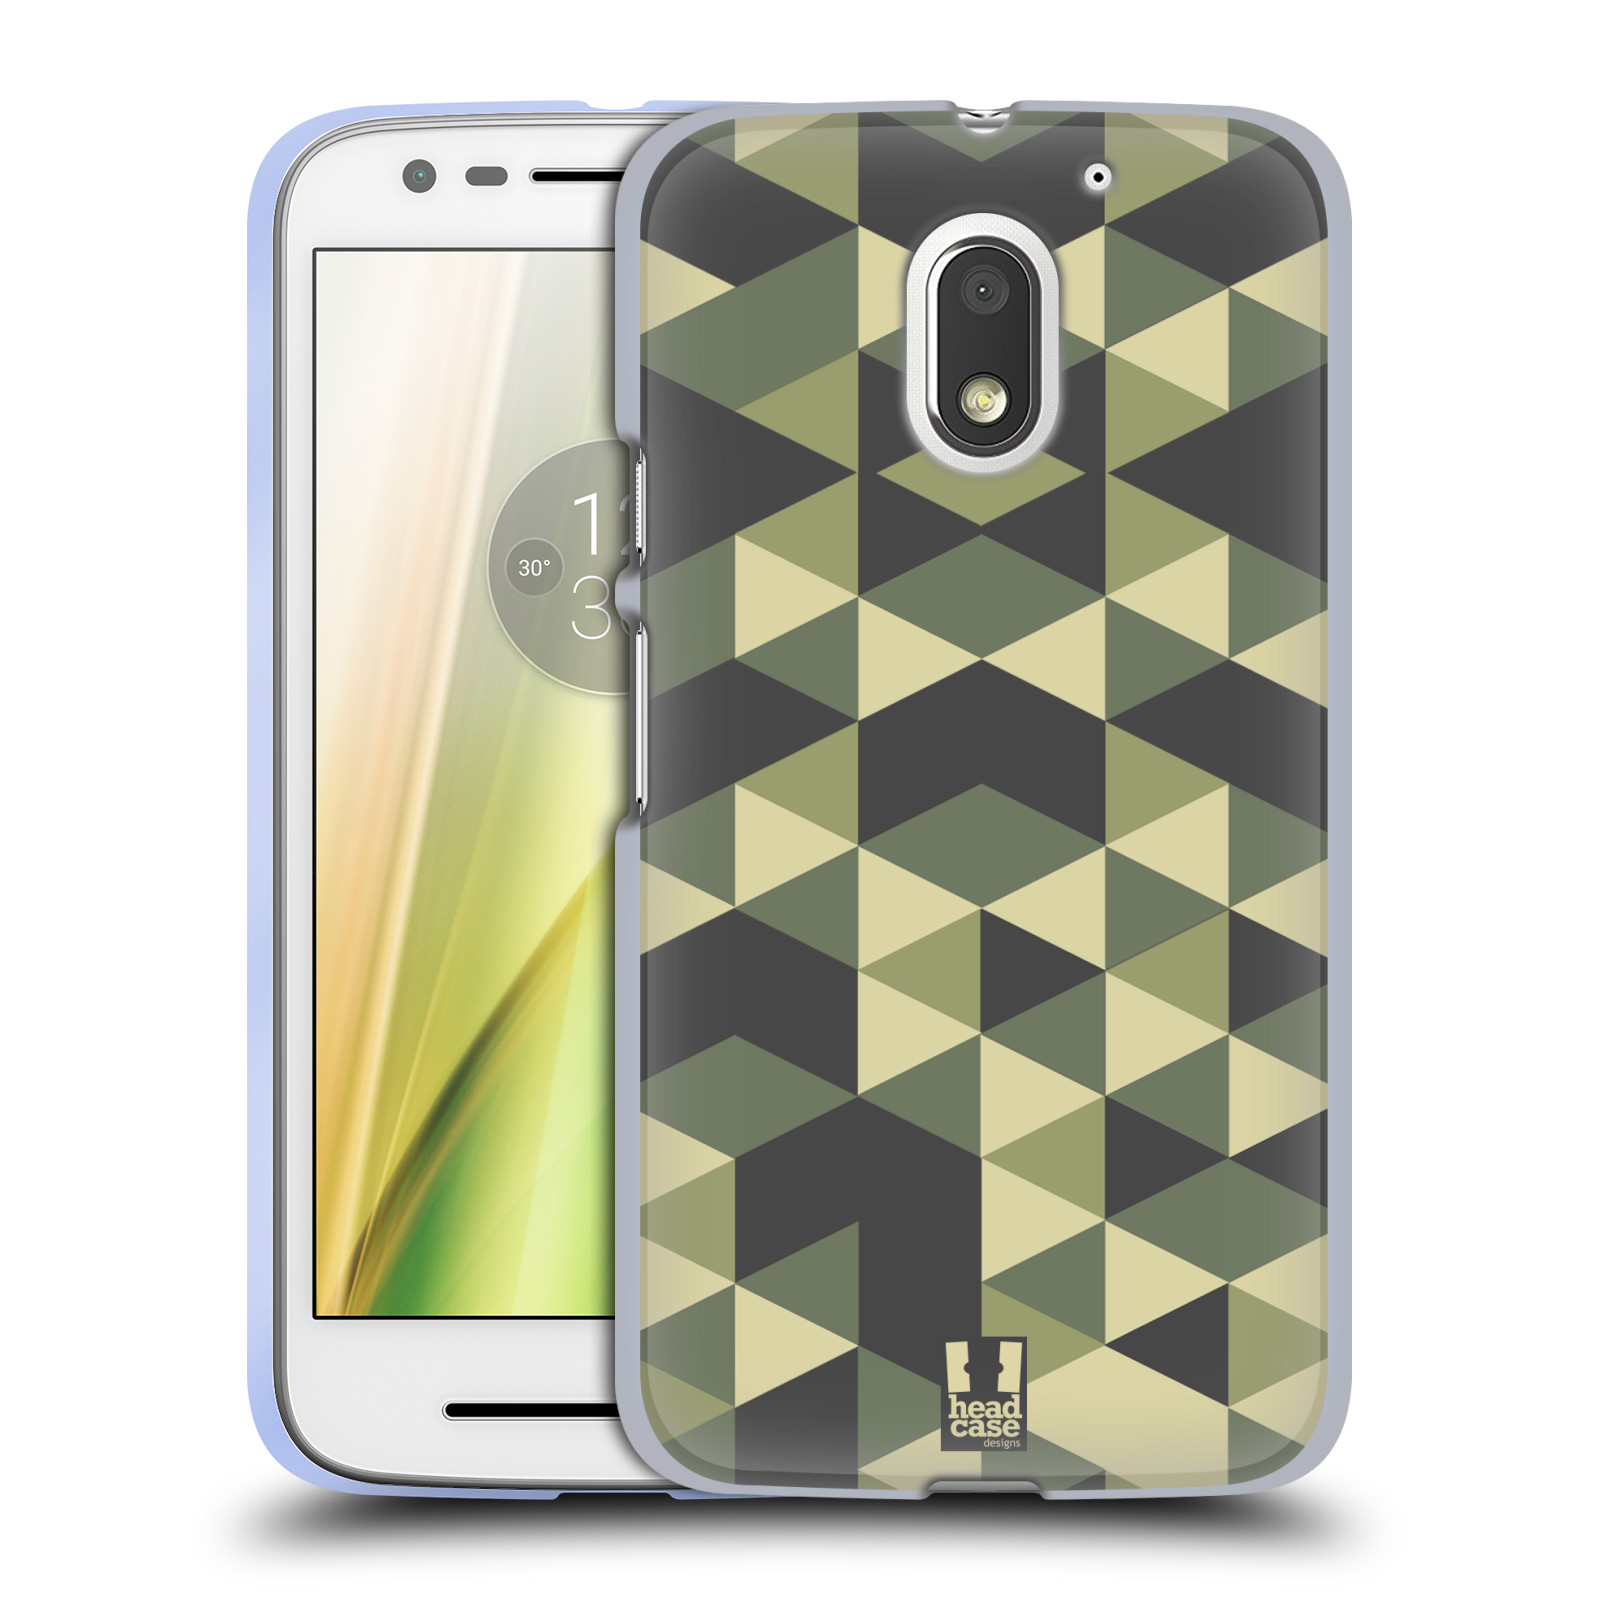 HEAD-CASE-CAMOUFLAGE-GEOMETRIQUE-ETUI-COQUE-EN-GEL-POUR-MOTOROLA-MOTO-E3-POWER